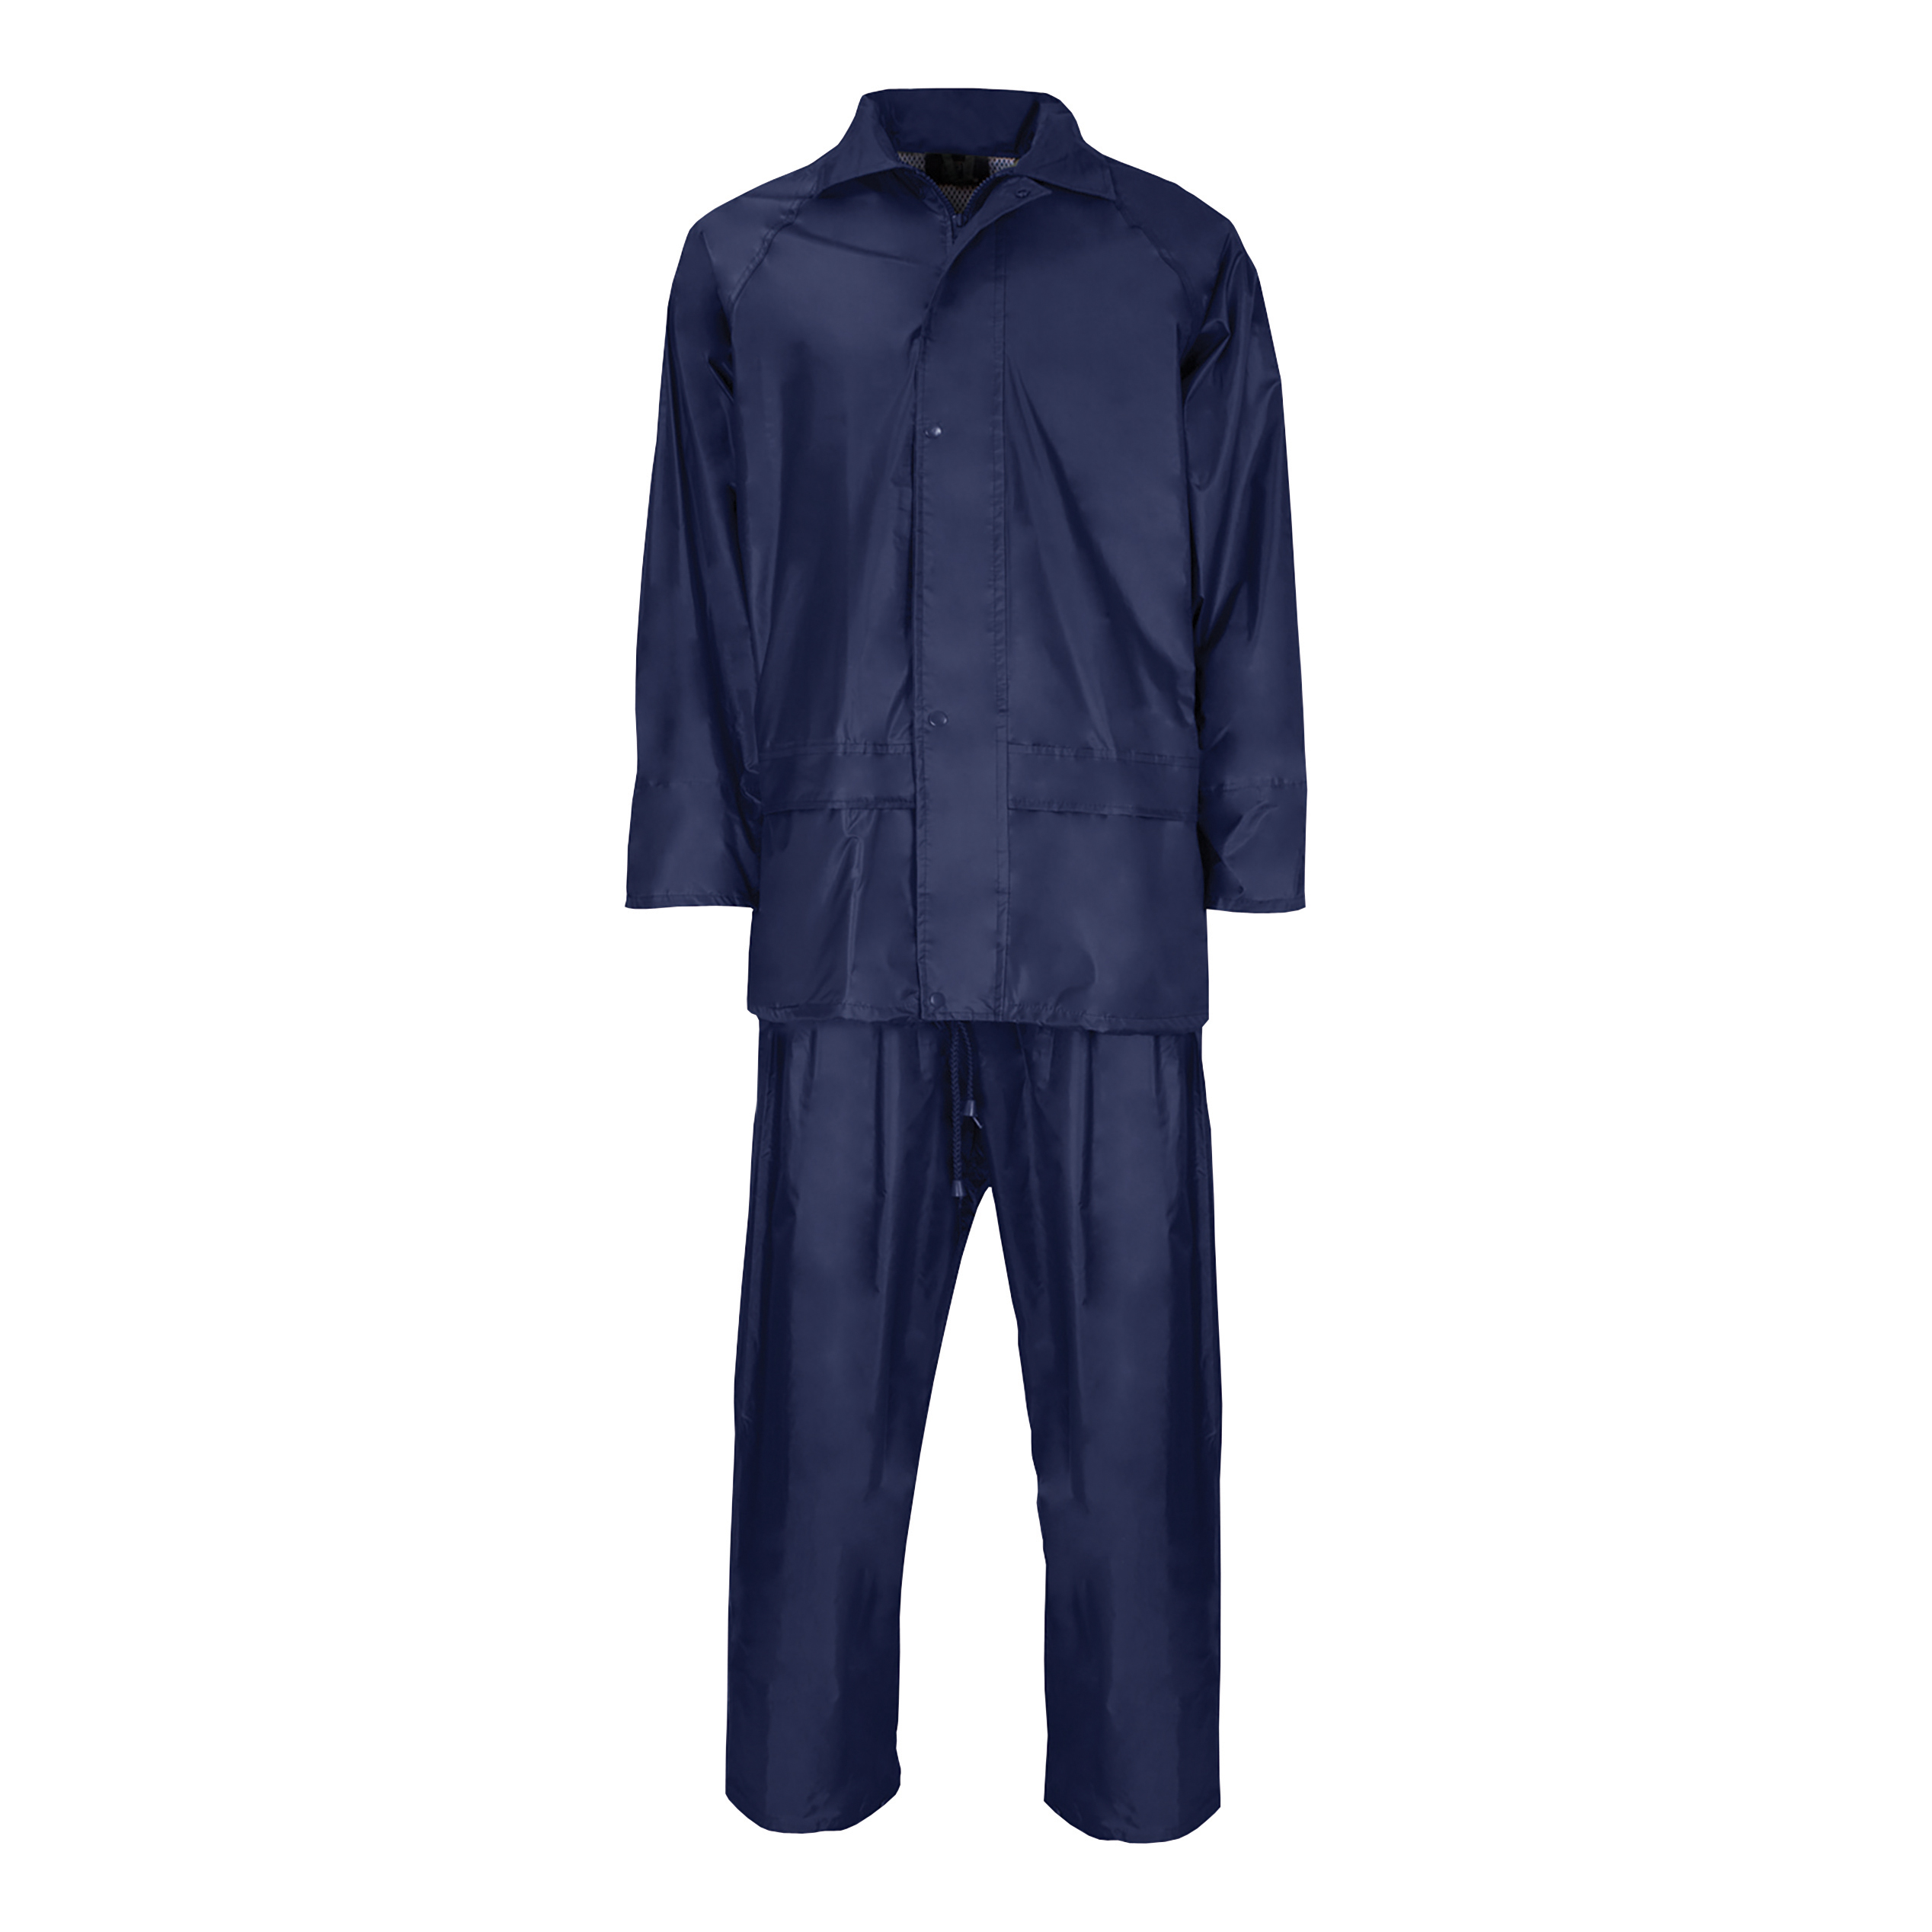 Rainsuit Polyester/PVC with Elasticated Waisted Trousers Small Navy *Approx 3 Day Leadtime*